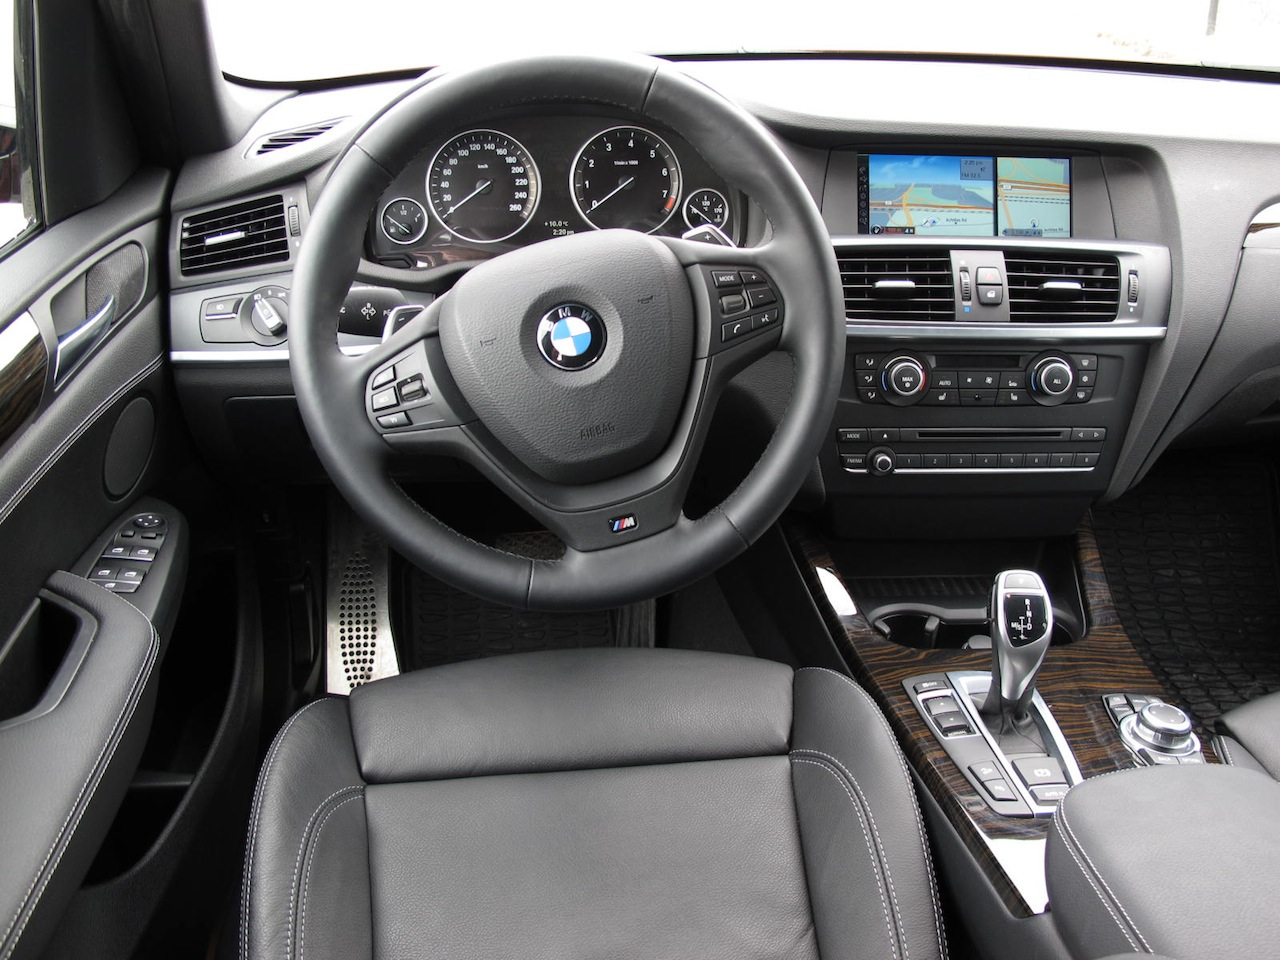 2013 Bmw X3 Xdrive35i Cars Photos Test Drives And